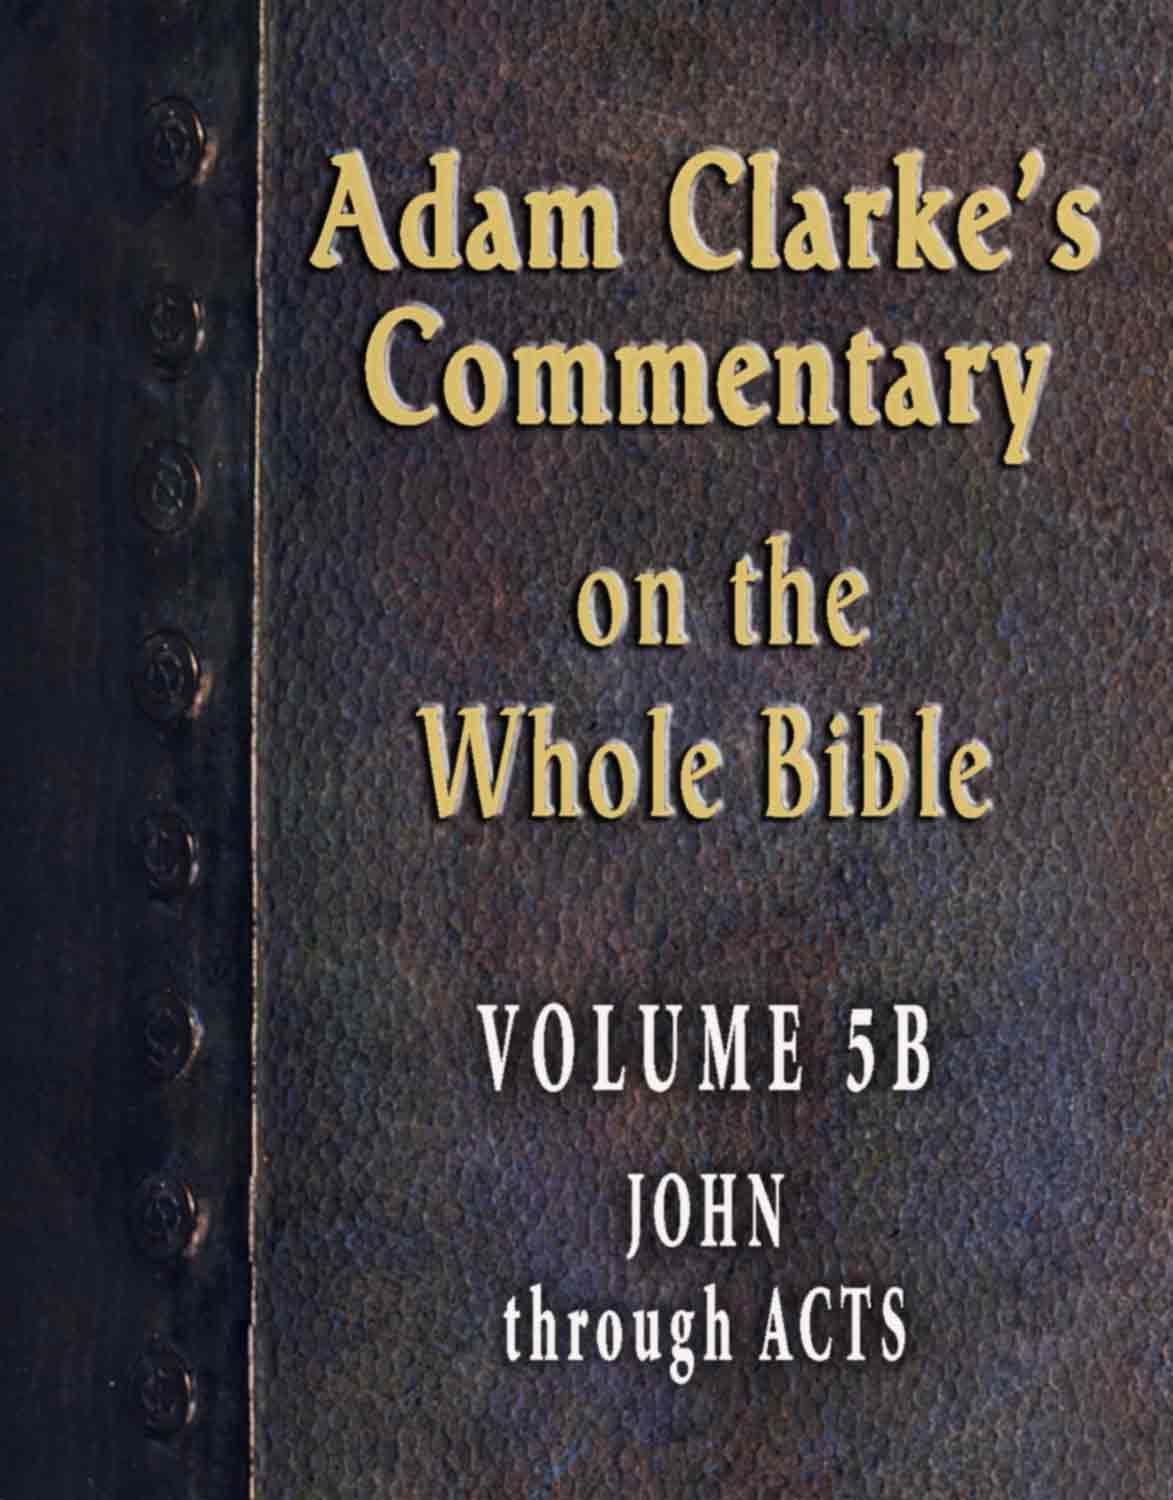 Adam Clarke's Commentary on the Whole Bible-Volume 5B-John through Acts By: Adam Clarke